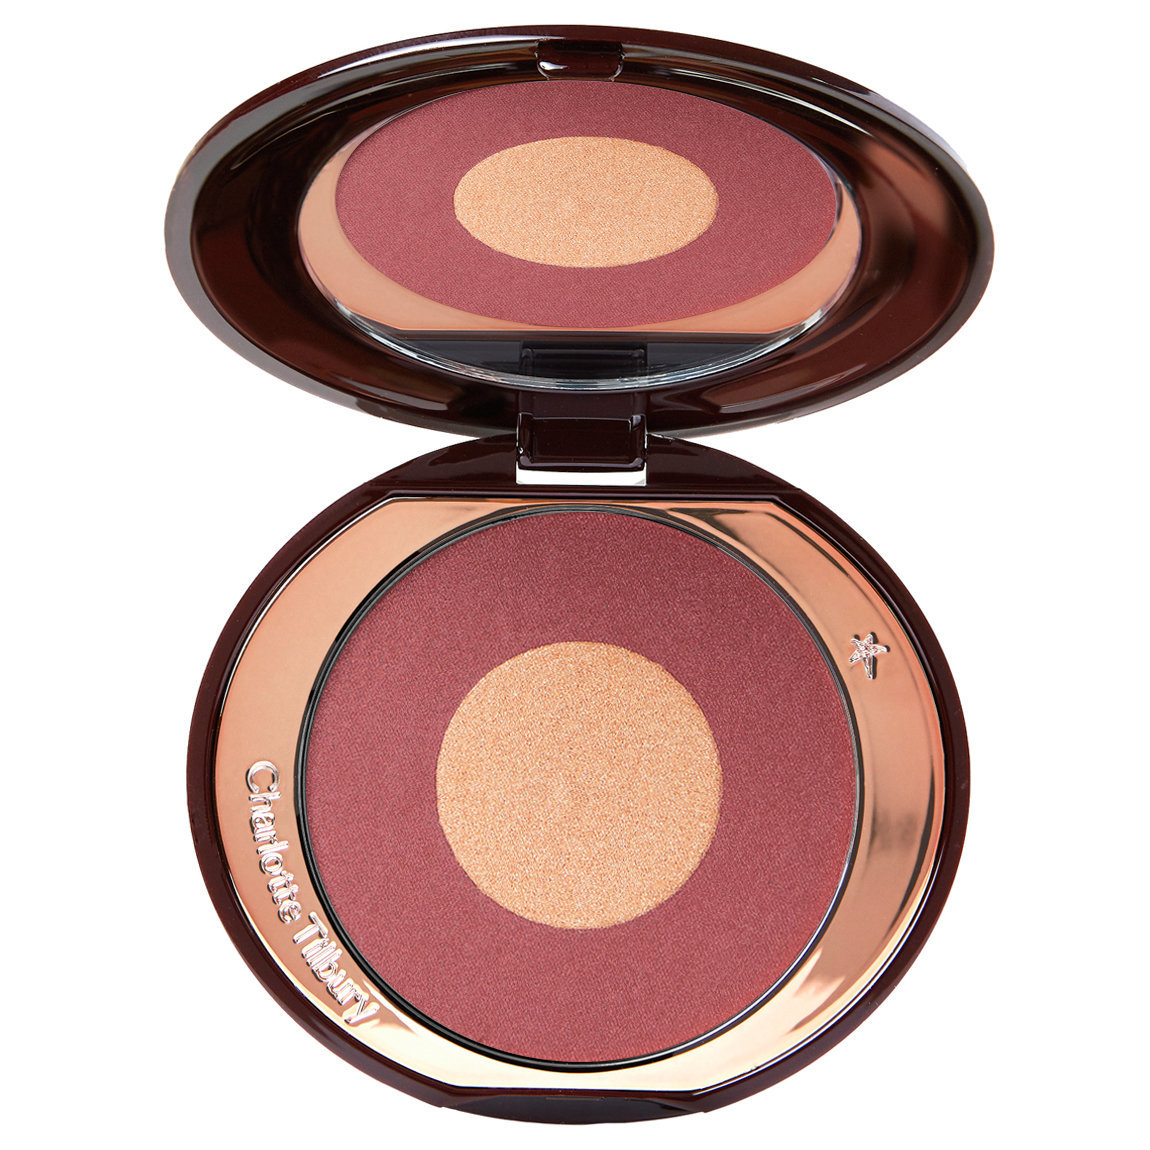 Charlotte Tilbury Cheek To Chic Walk of No Shame alternative view 1 - product swatch.